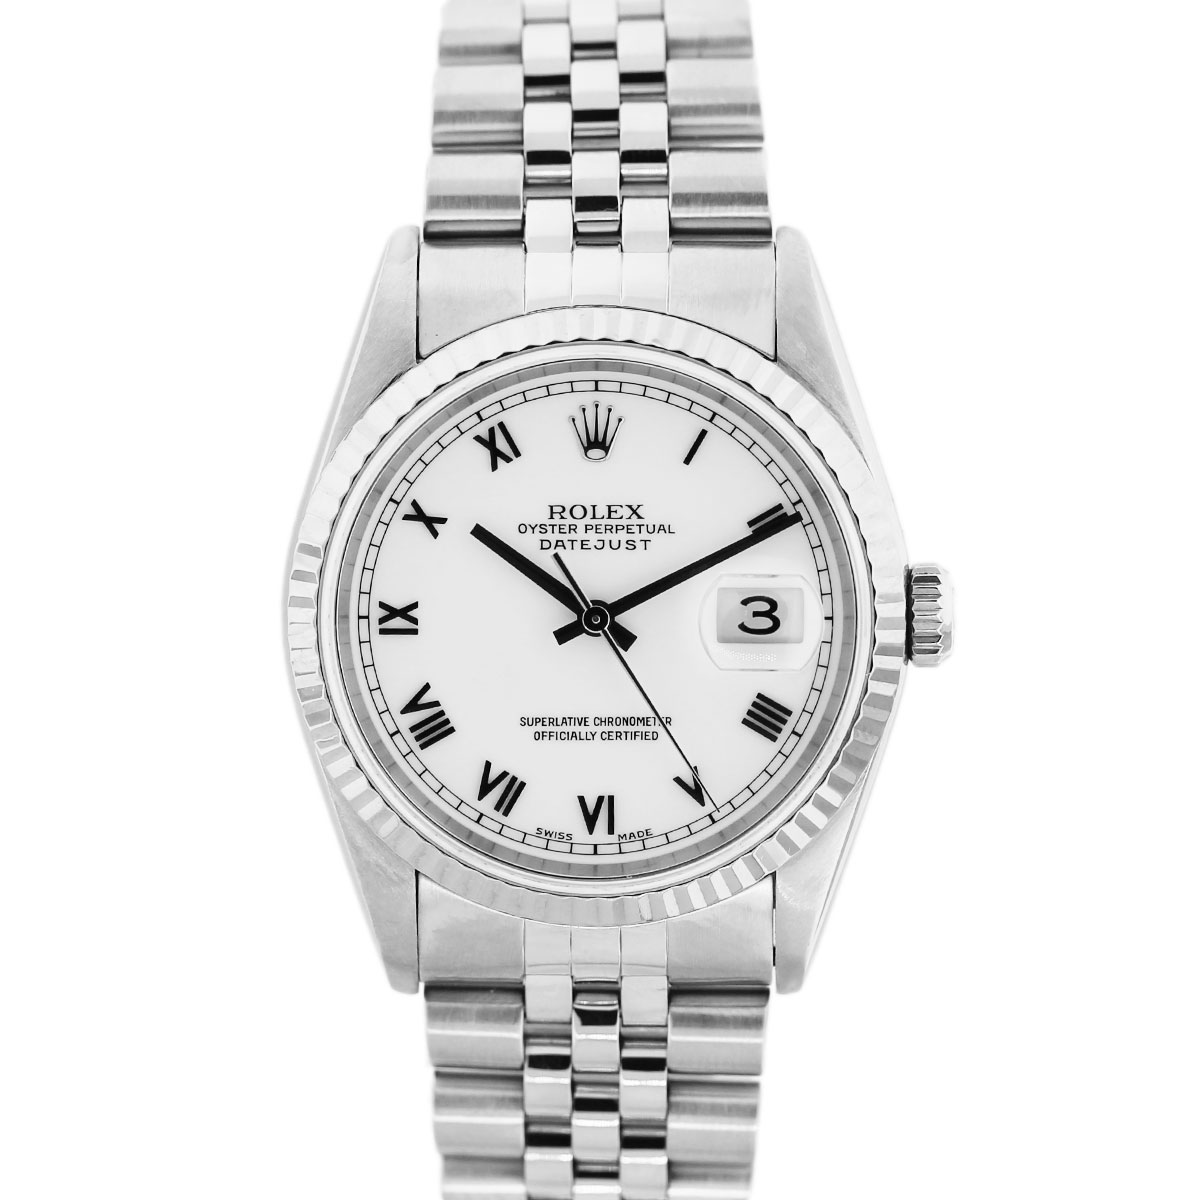 Rolex Oyster Perpetual Datejust 16234 Stainless Steel Watch